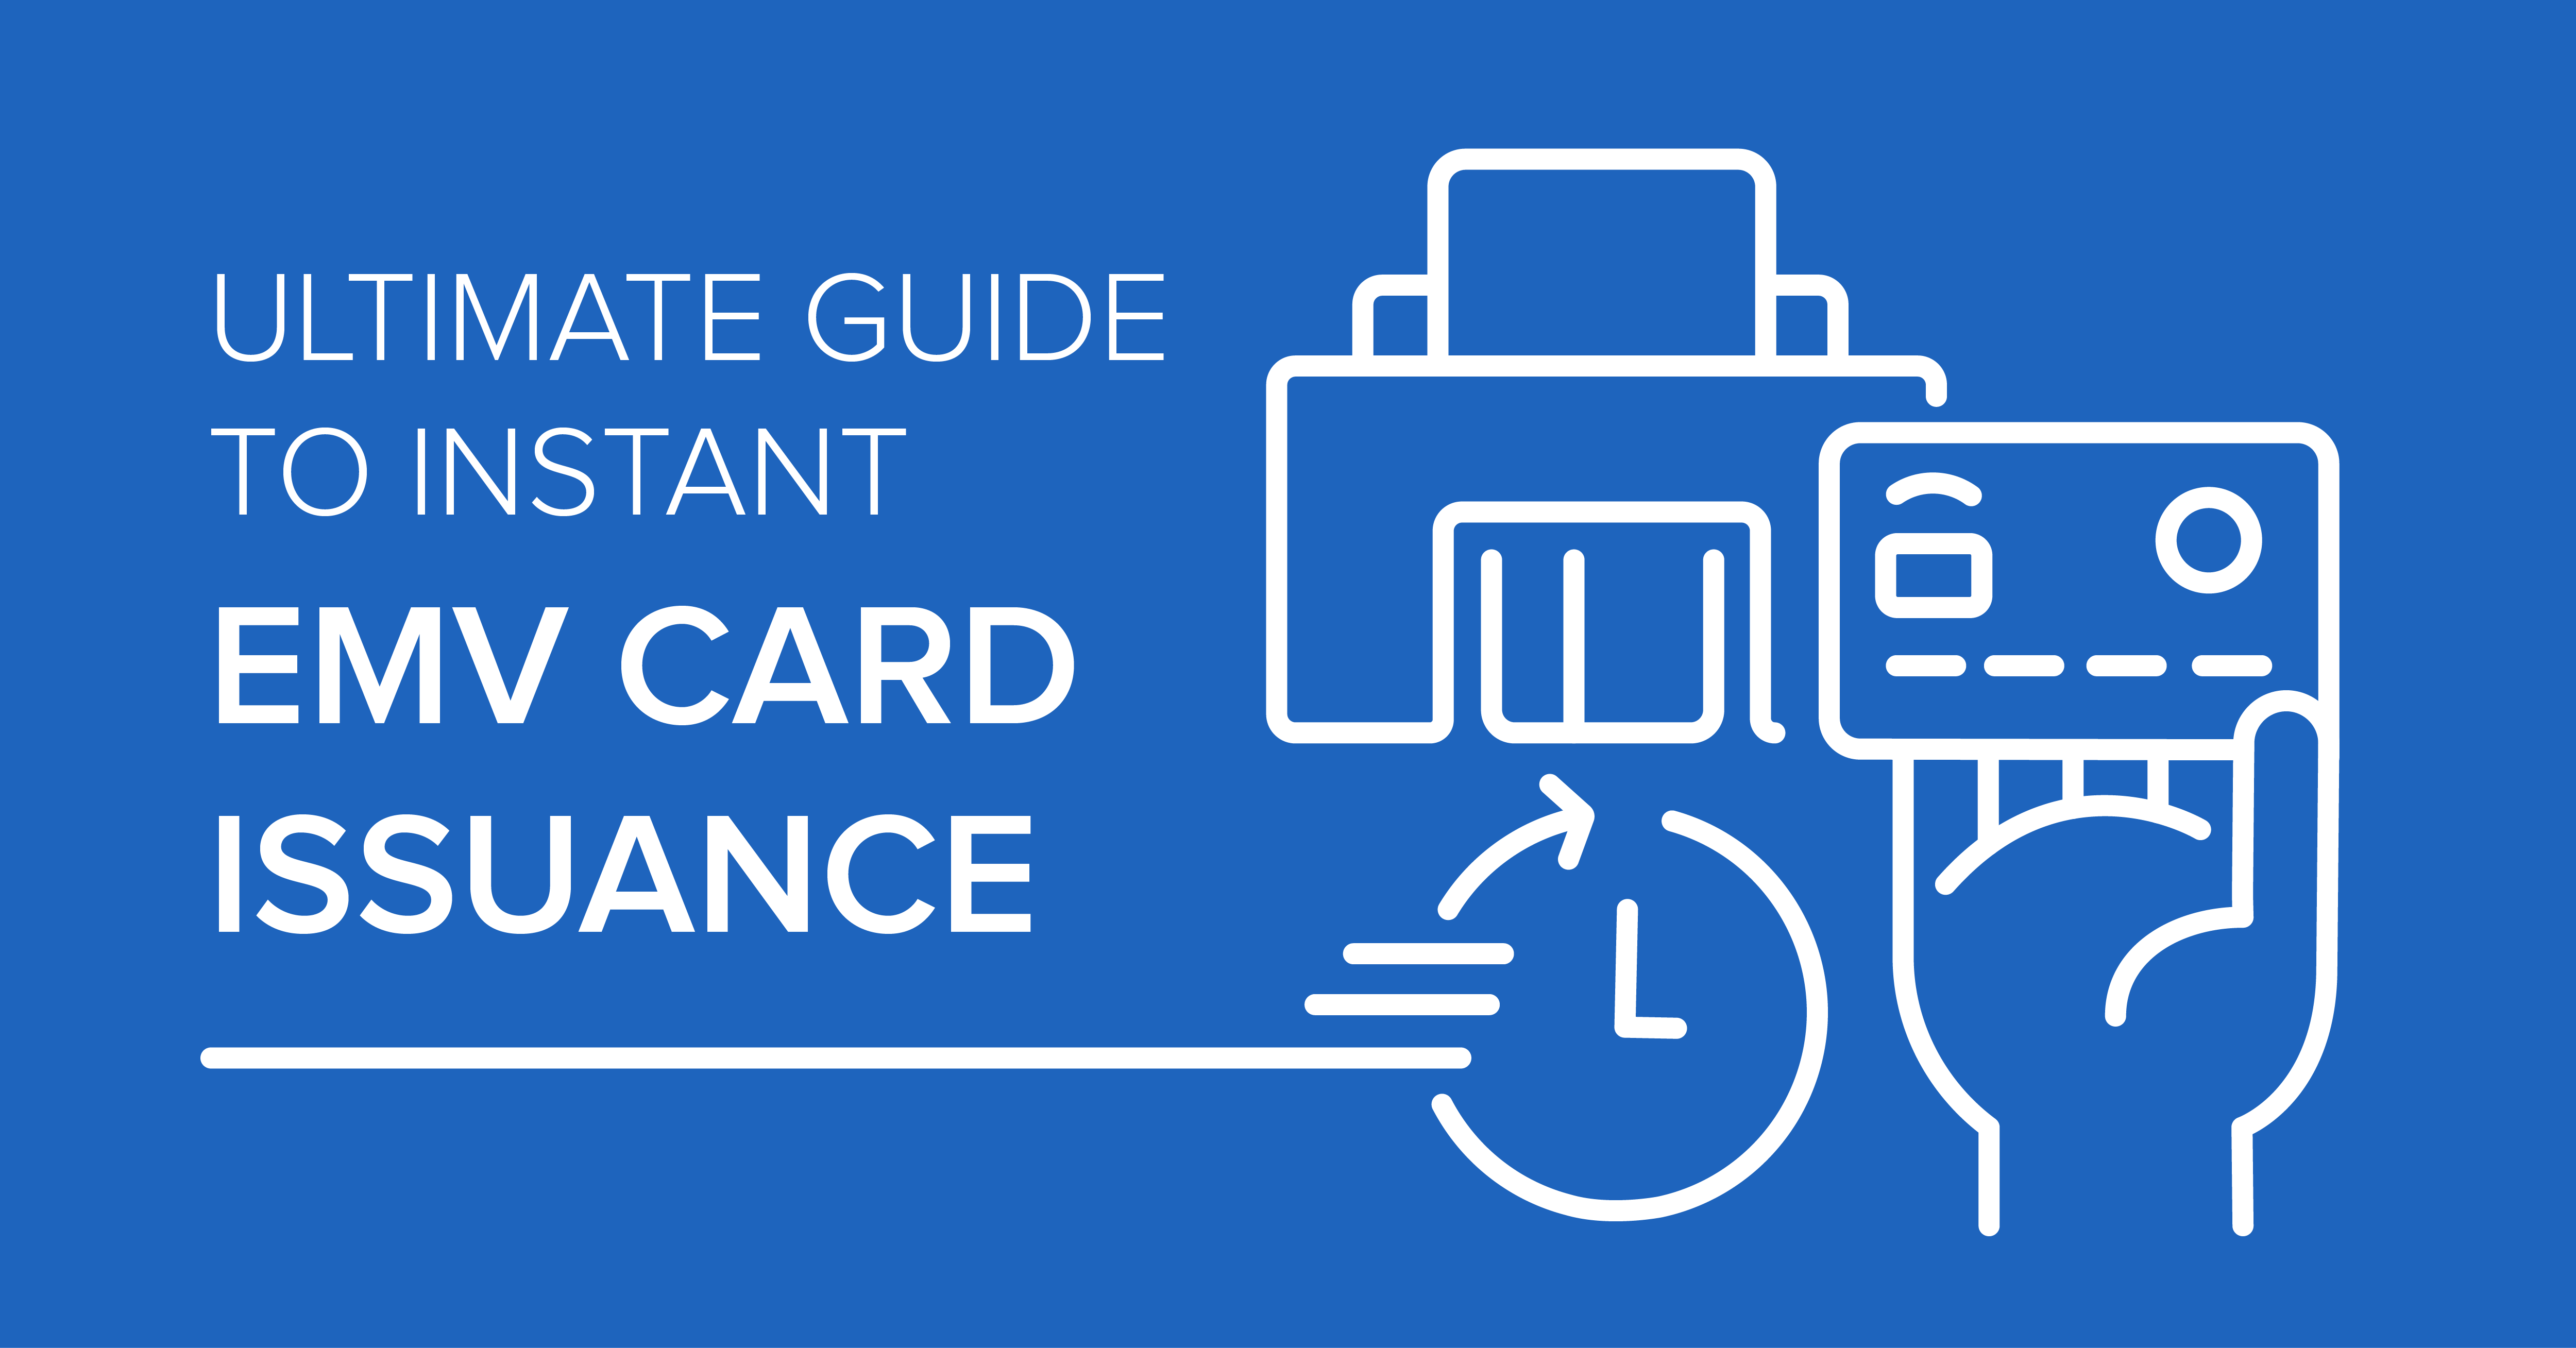 The Ultimate Guide to Instant EMV Card Issuance